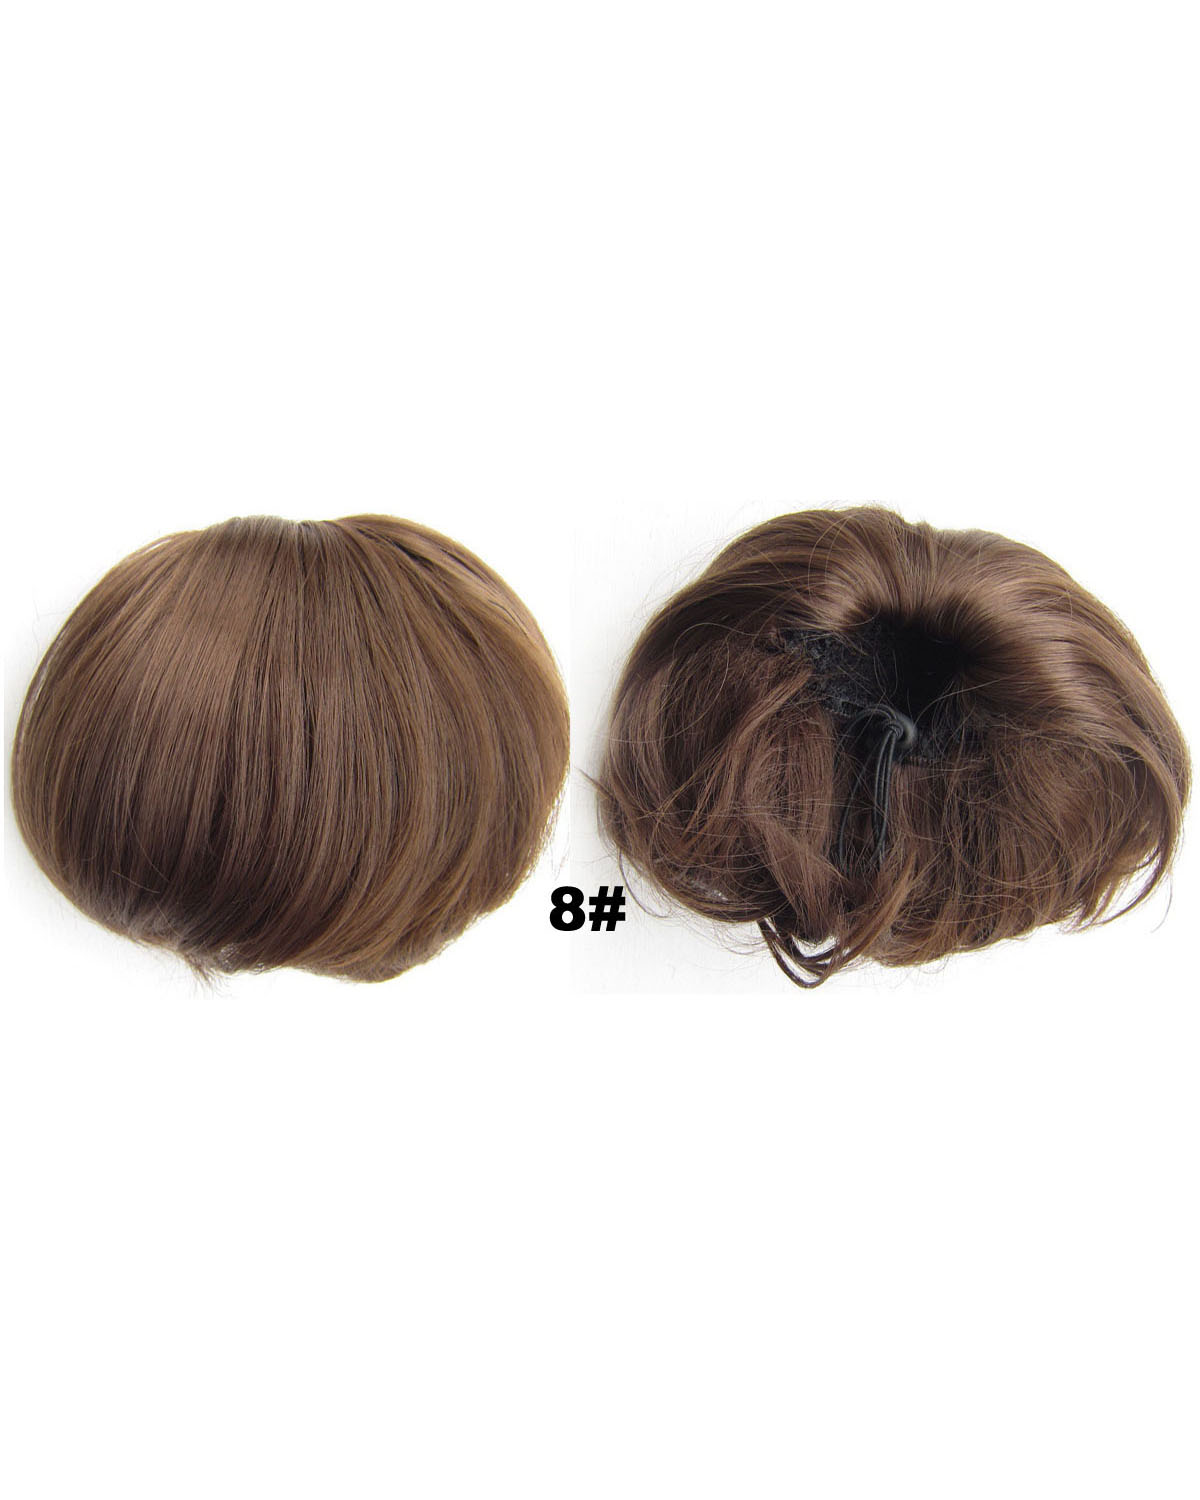 Ladies Great Straight Short Hair Buns Drawstring Synthetic Hair Extension Bride Scrunchies 8#